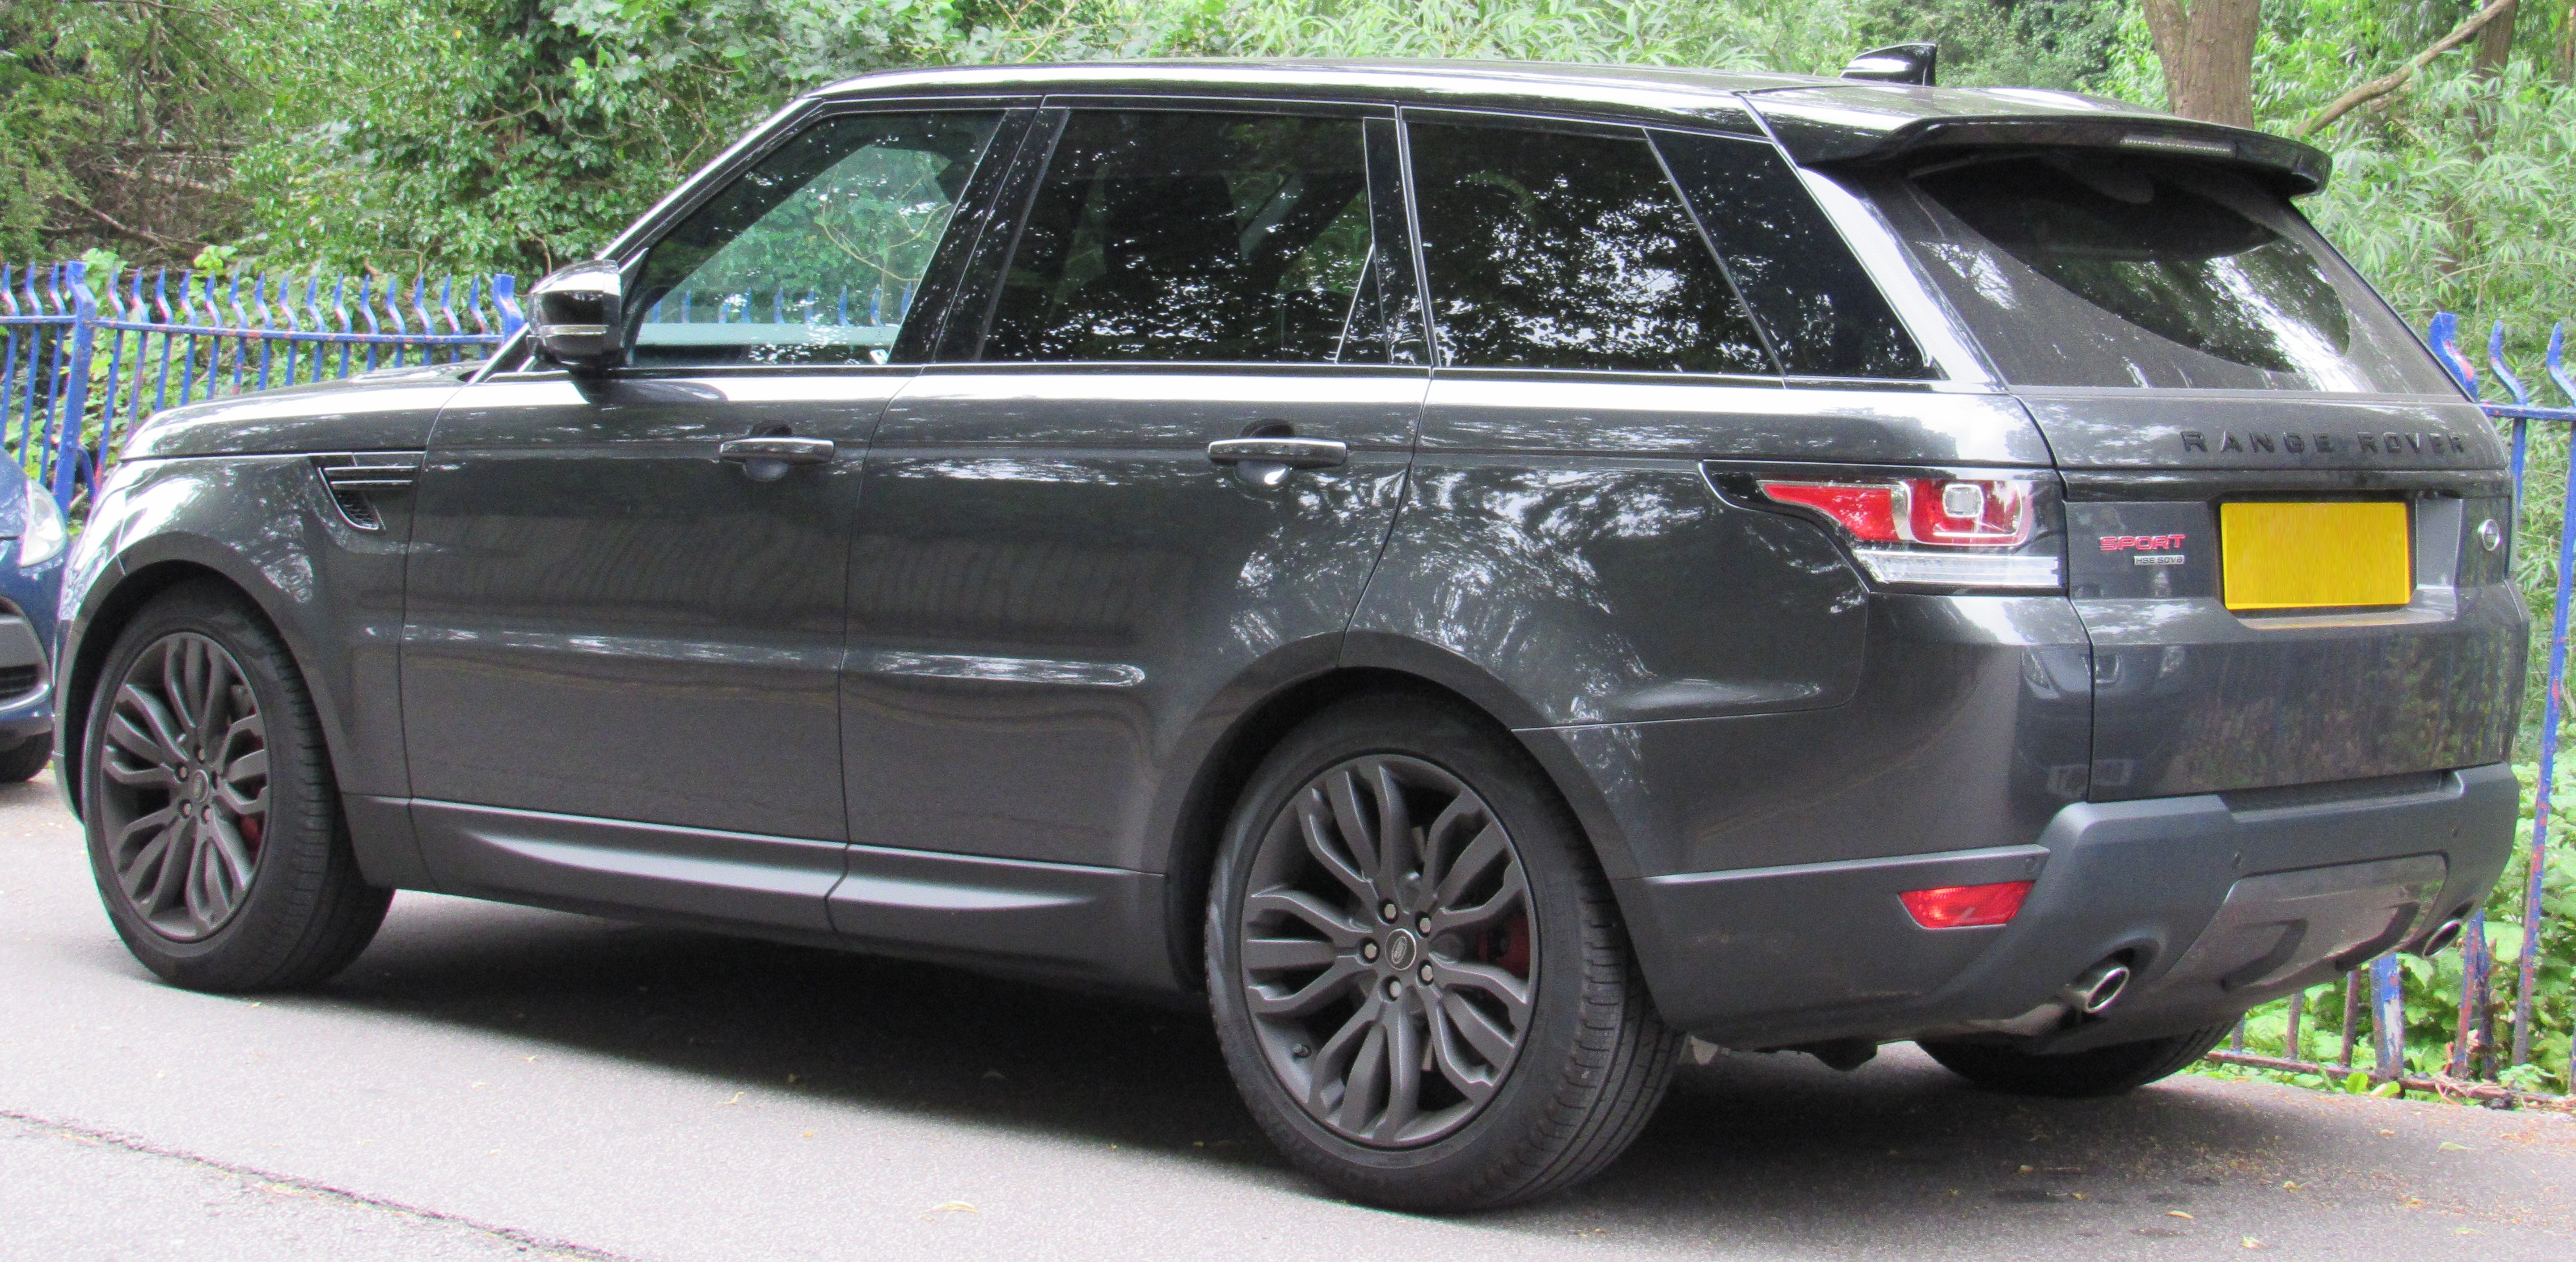 Range Rover Sport Wikipedia >> File:2017 Range Rover Sport HSE Automatic 3.0 Rear.jpg - Wikimedia Commons